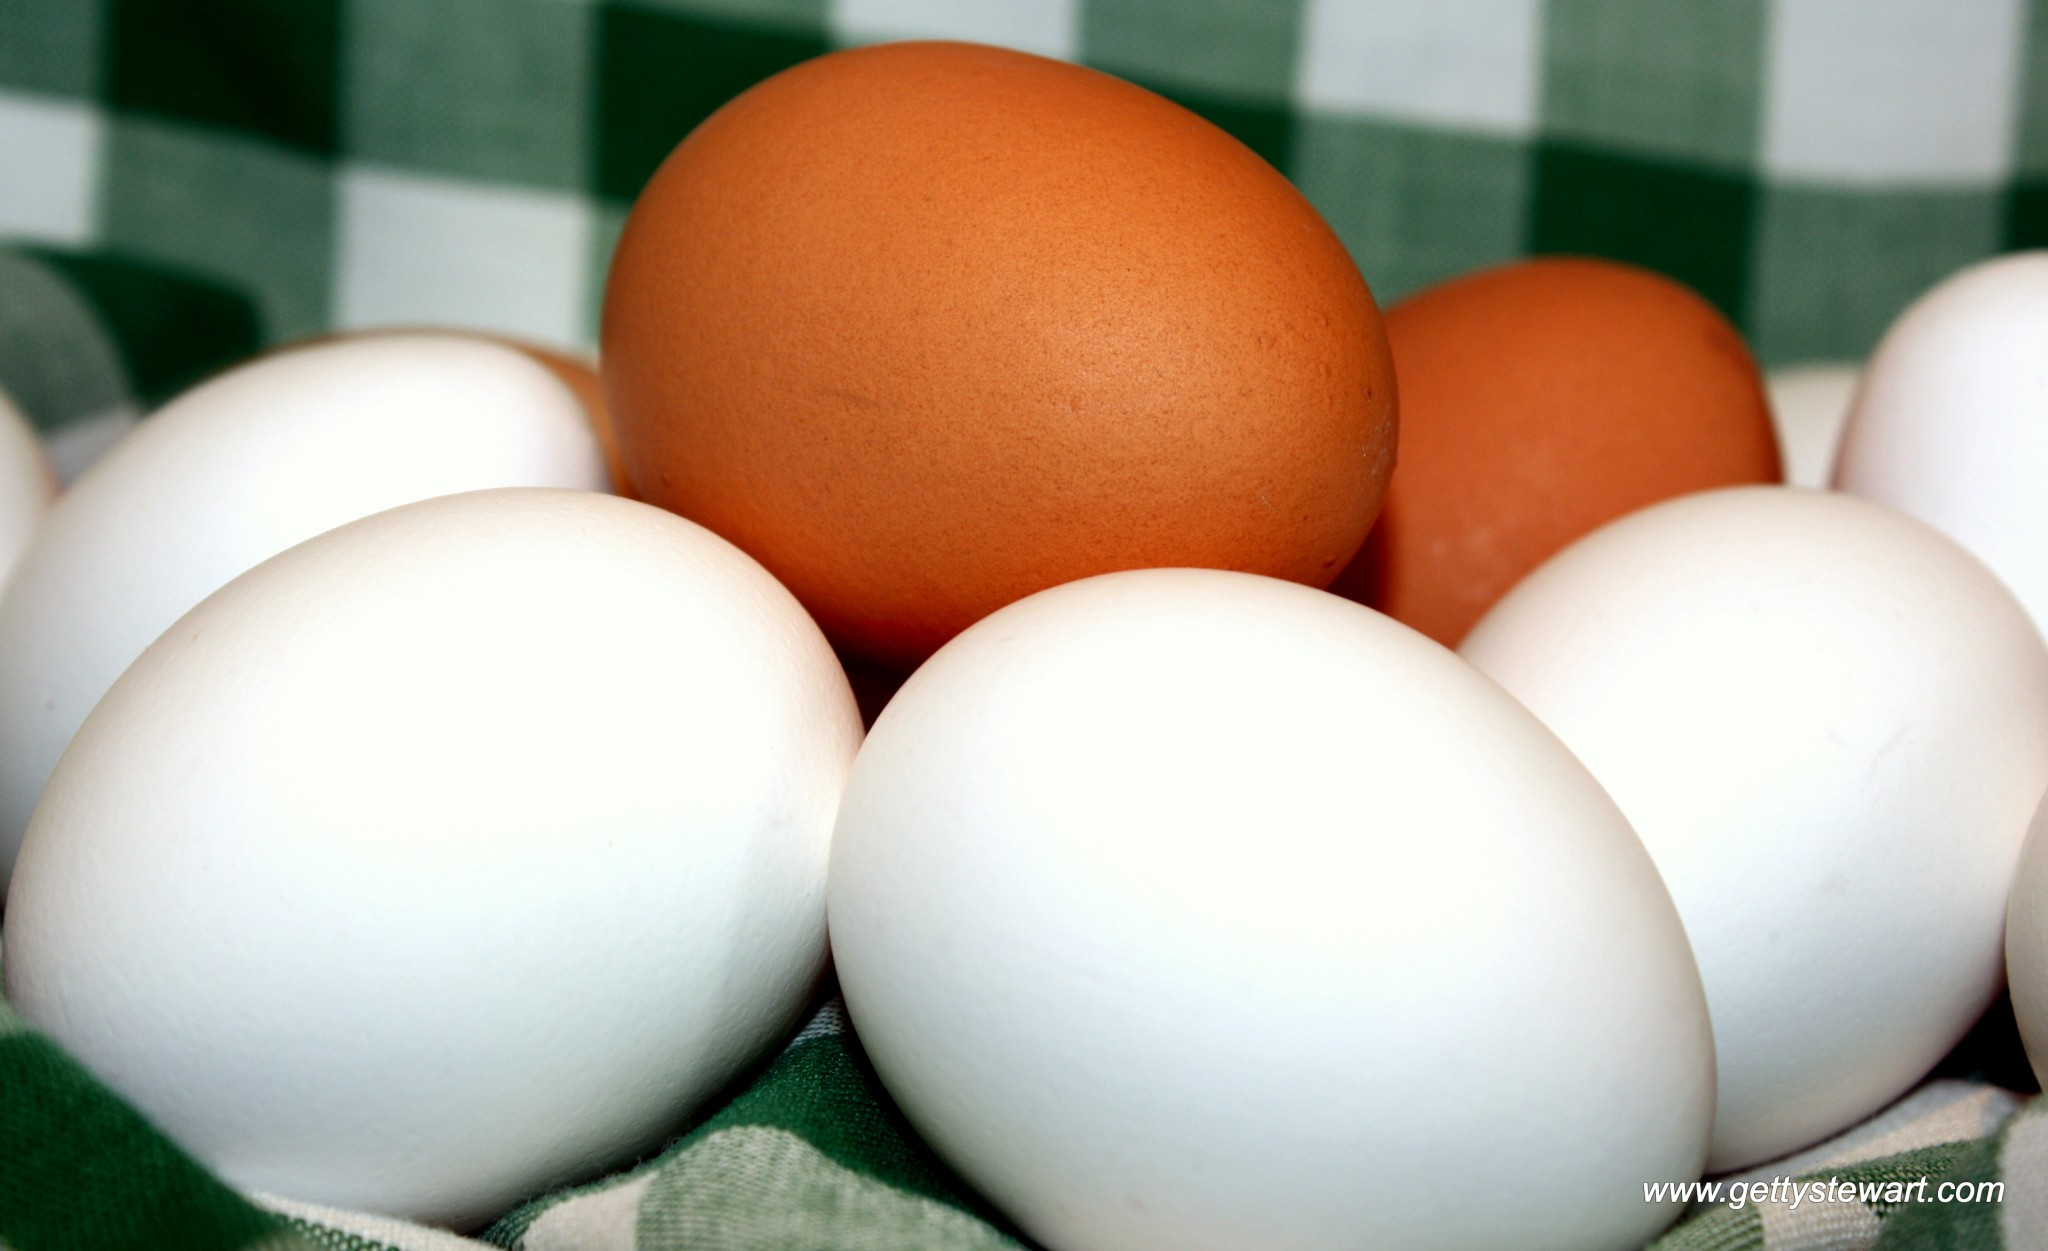 Egg Facts - Top 10 FAQs About Eggs